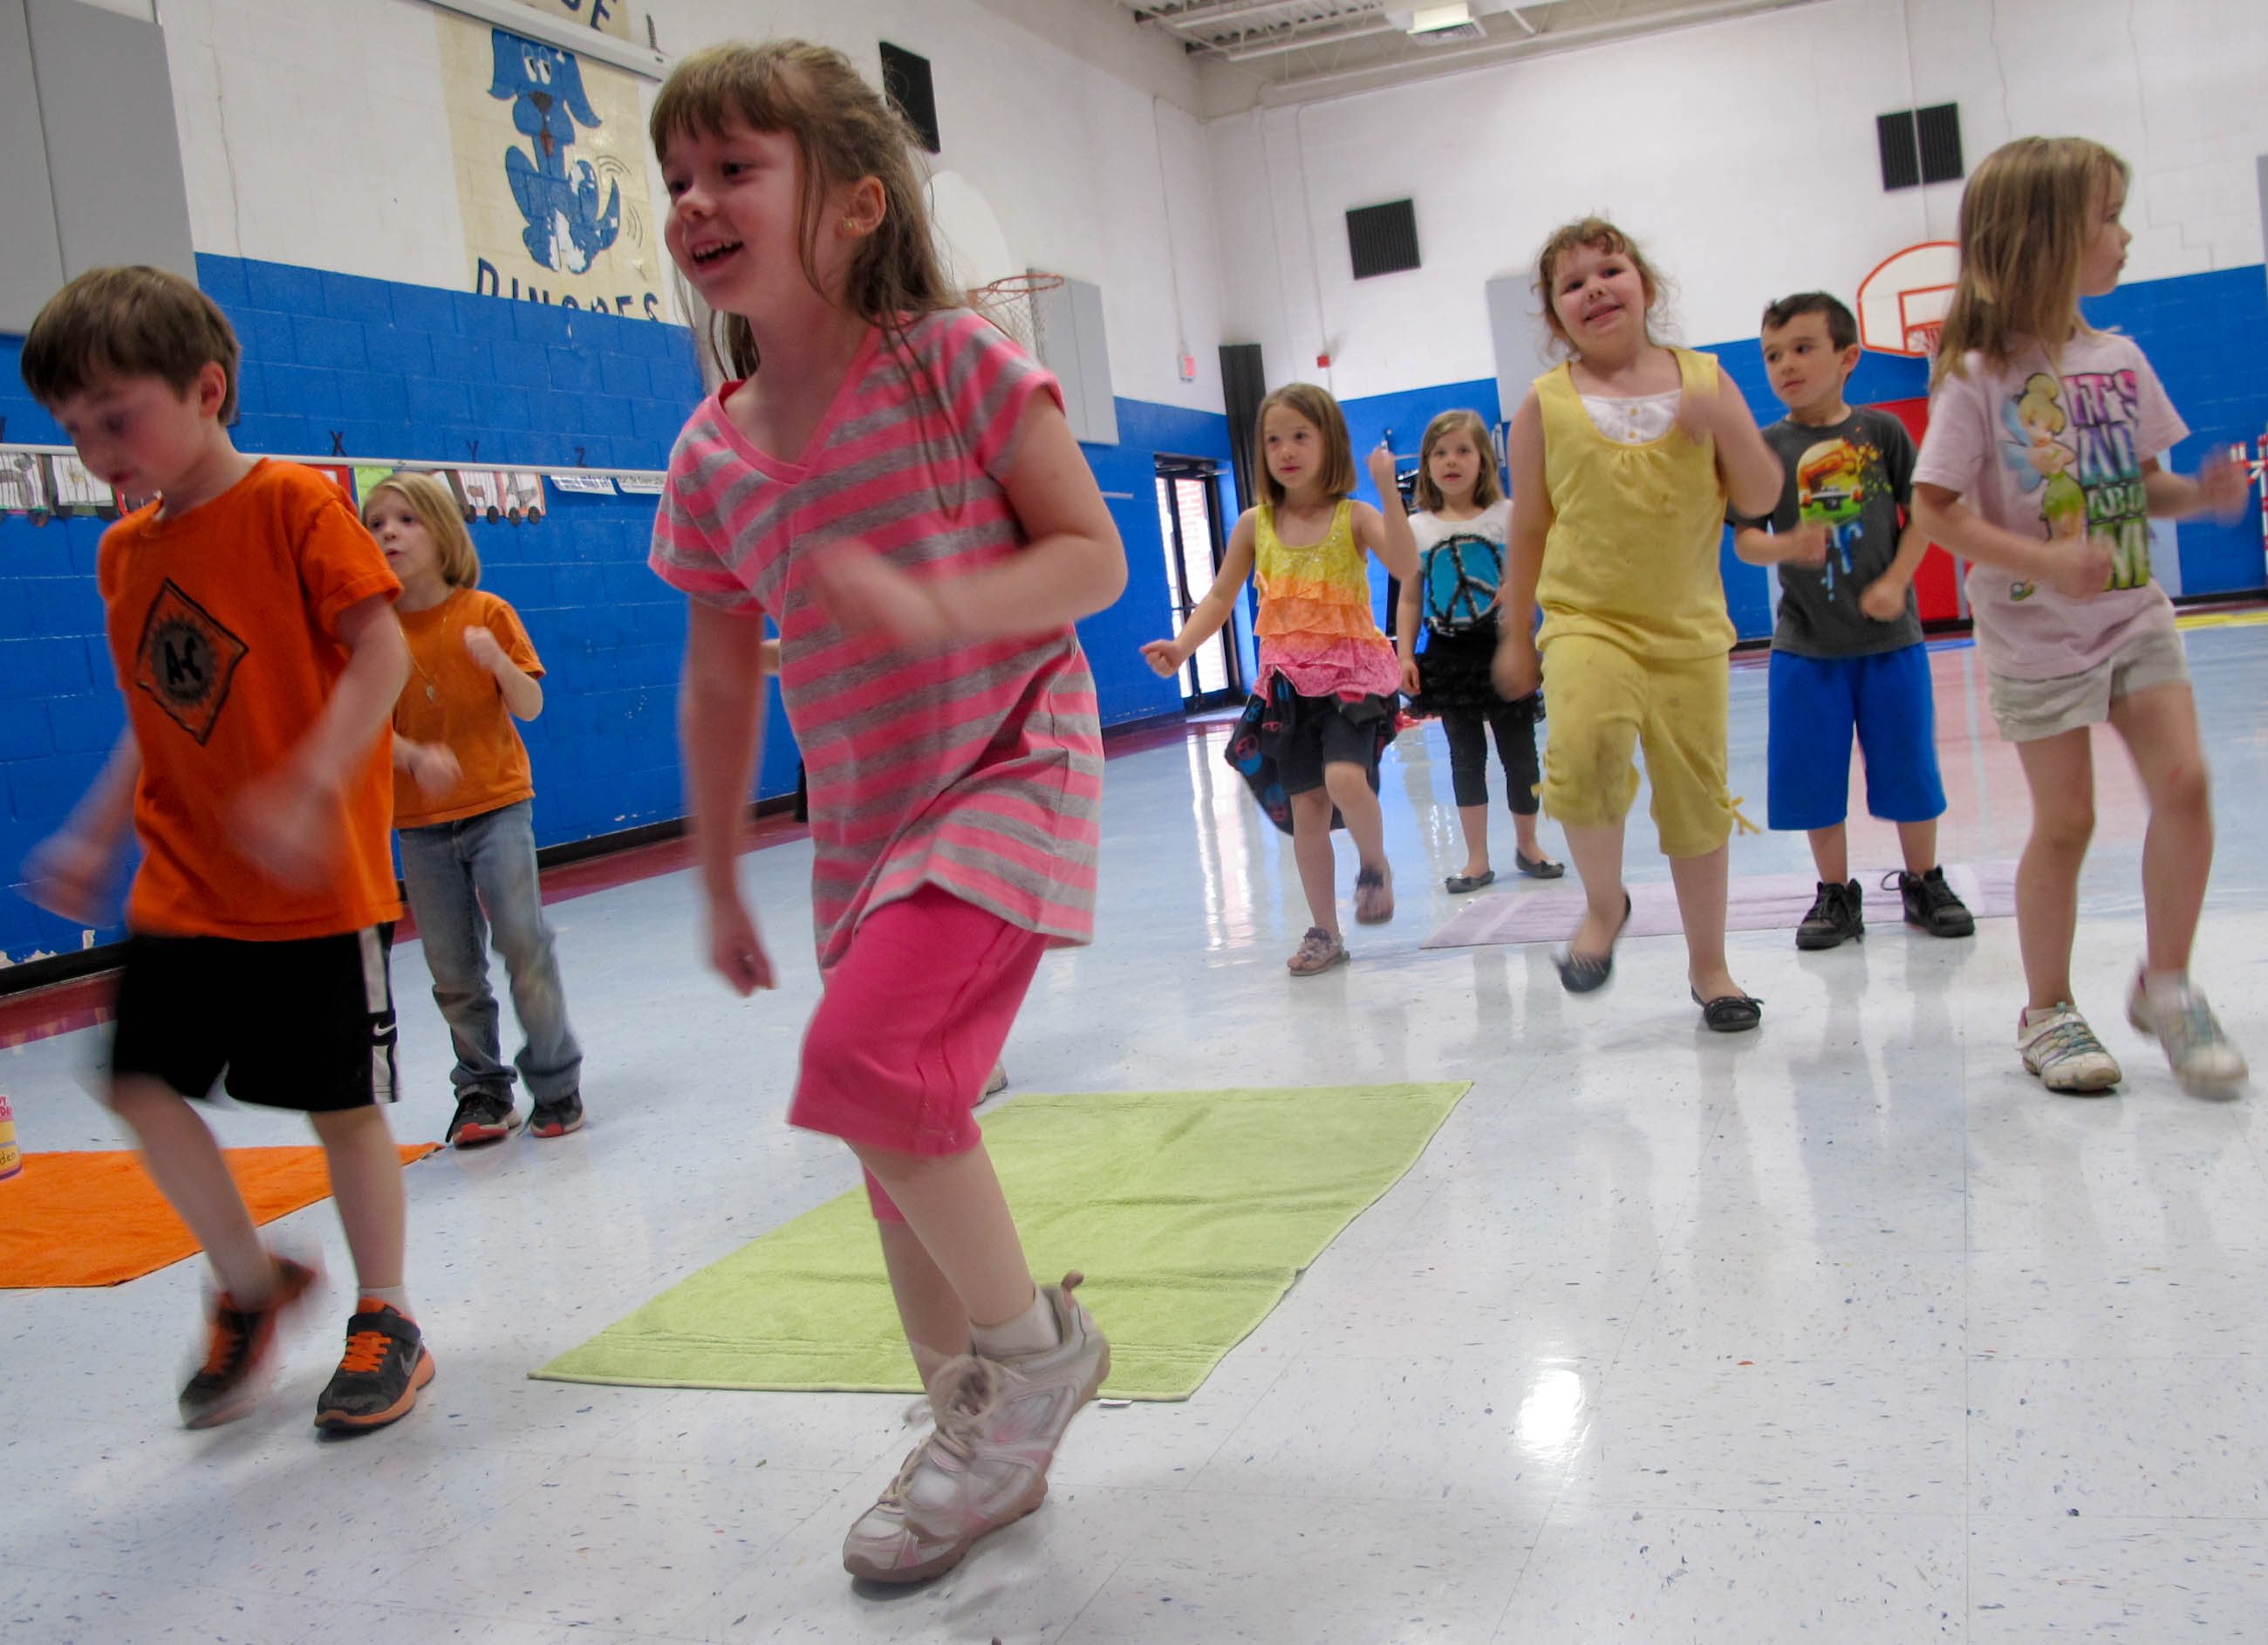 Gym Activities For Elementary School